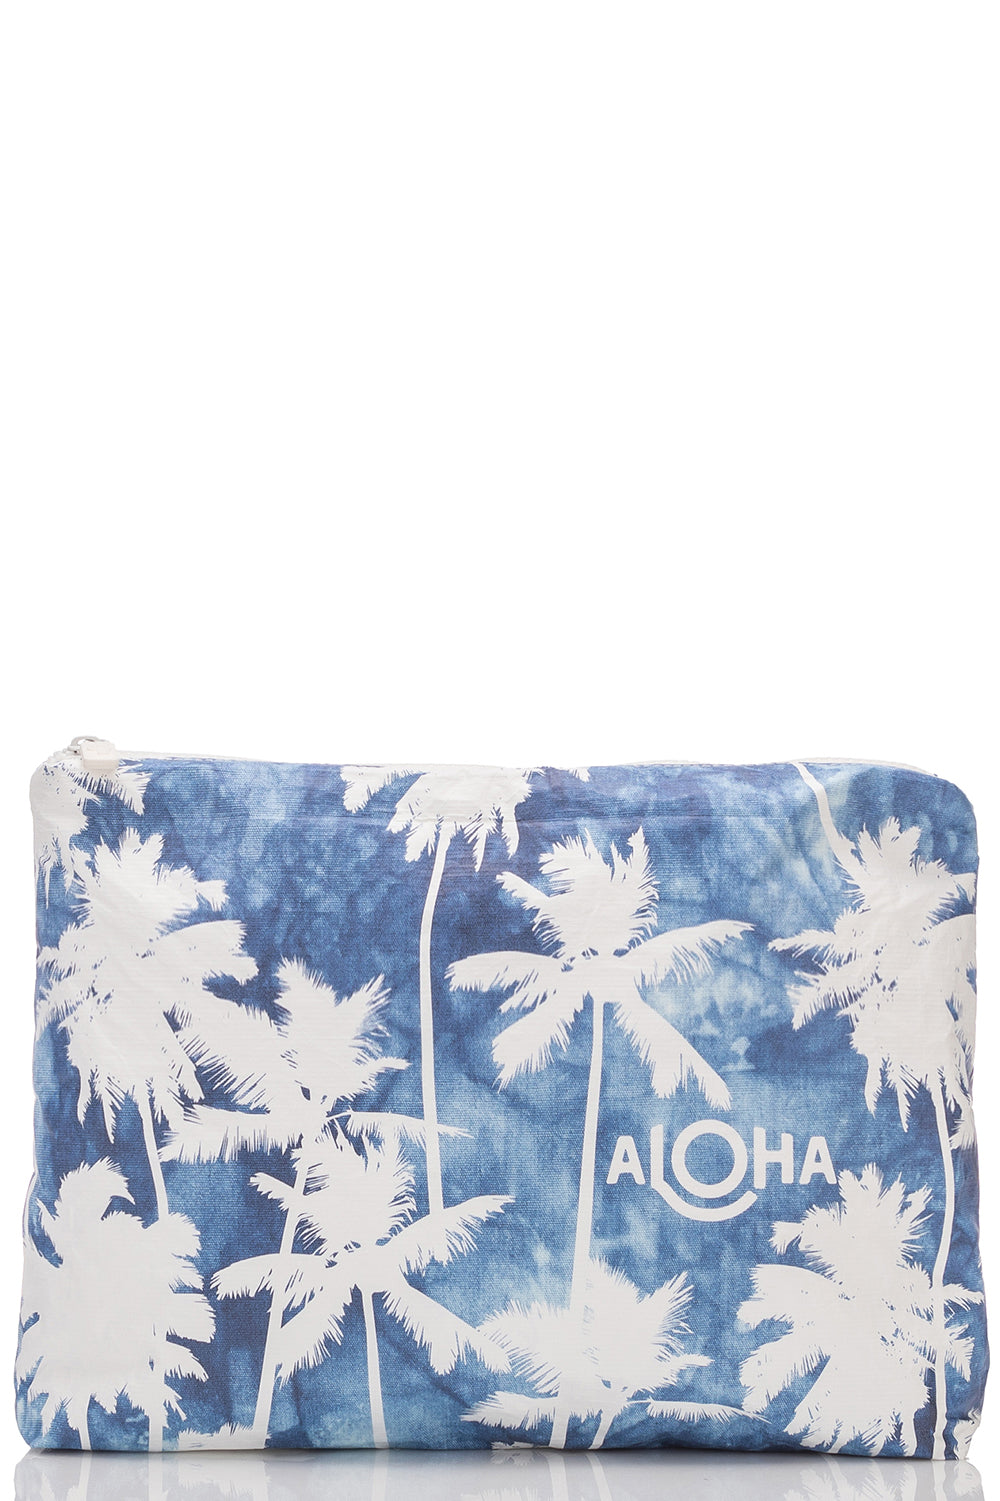 ALOHA Collection Mid Coco Palms Pouch in Indigo